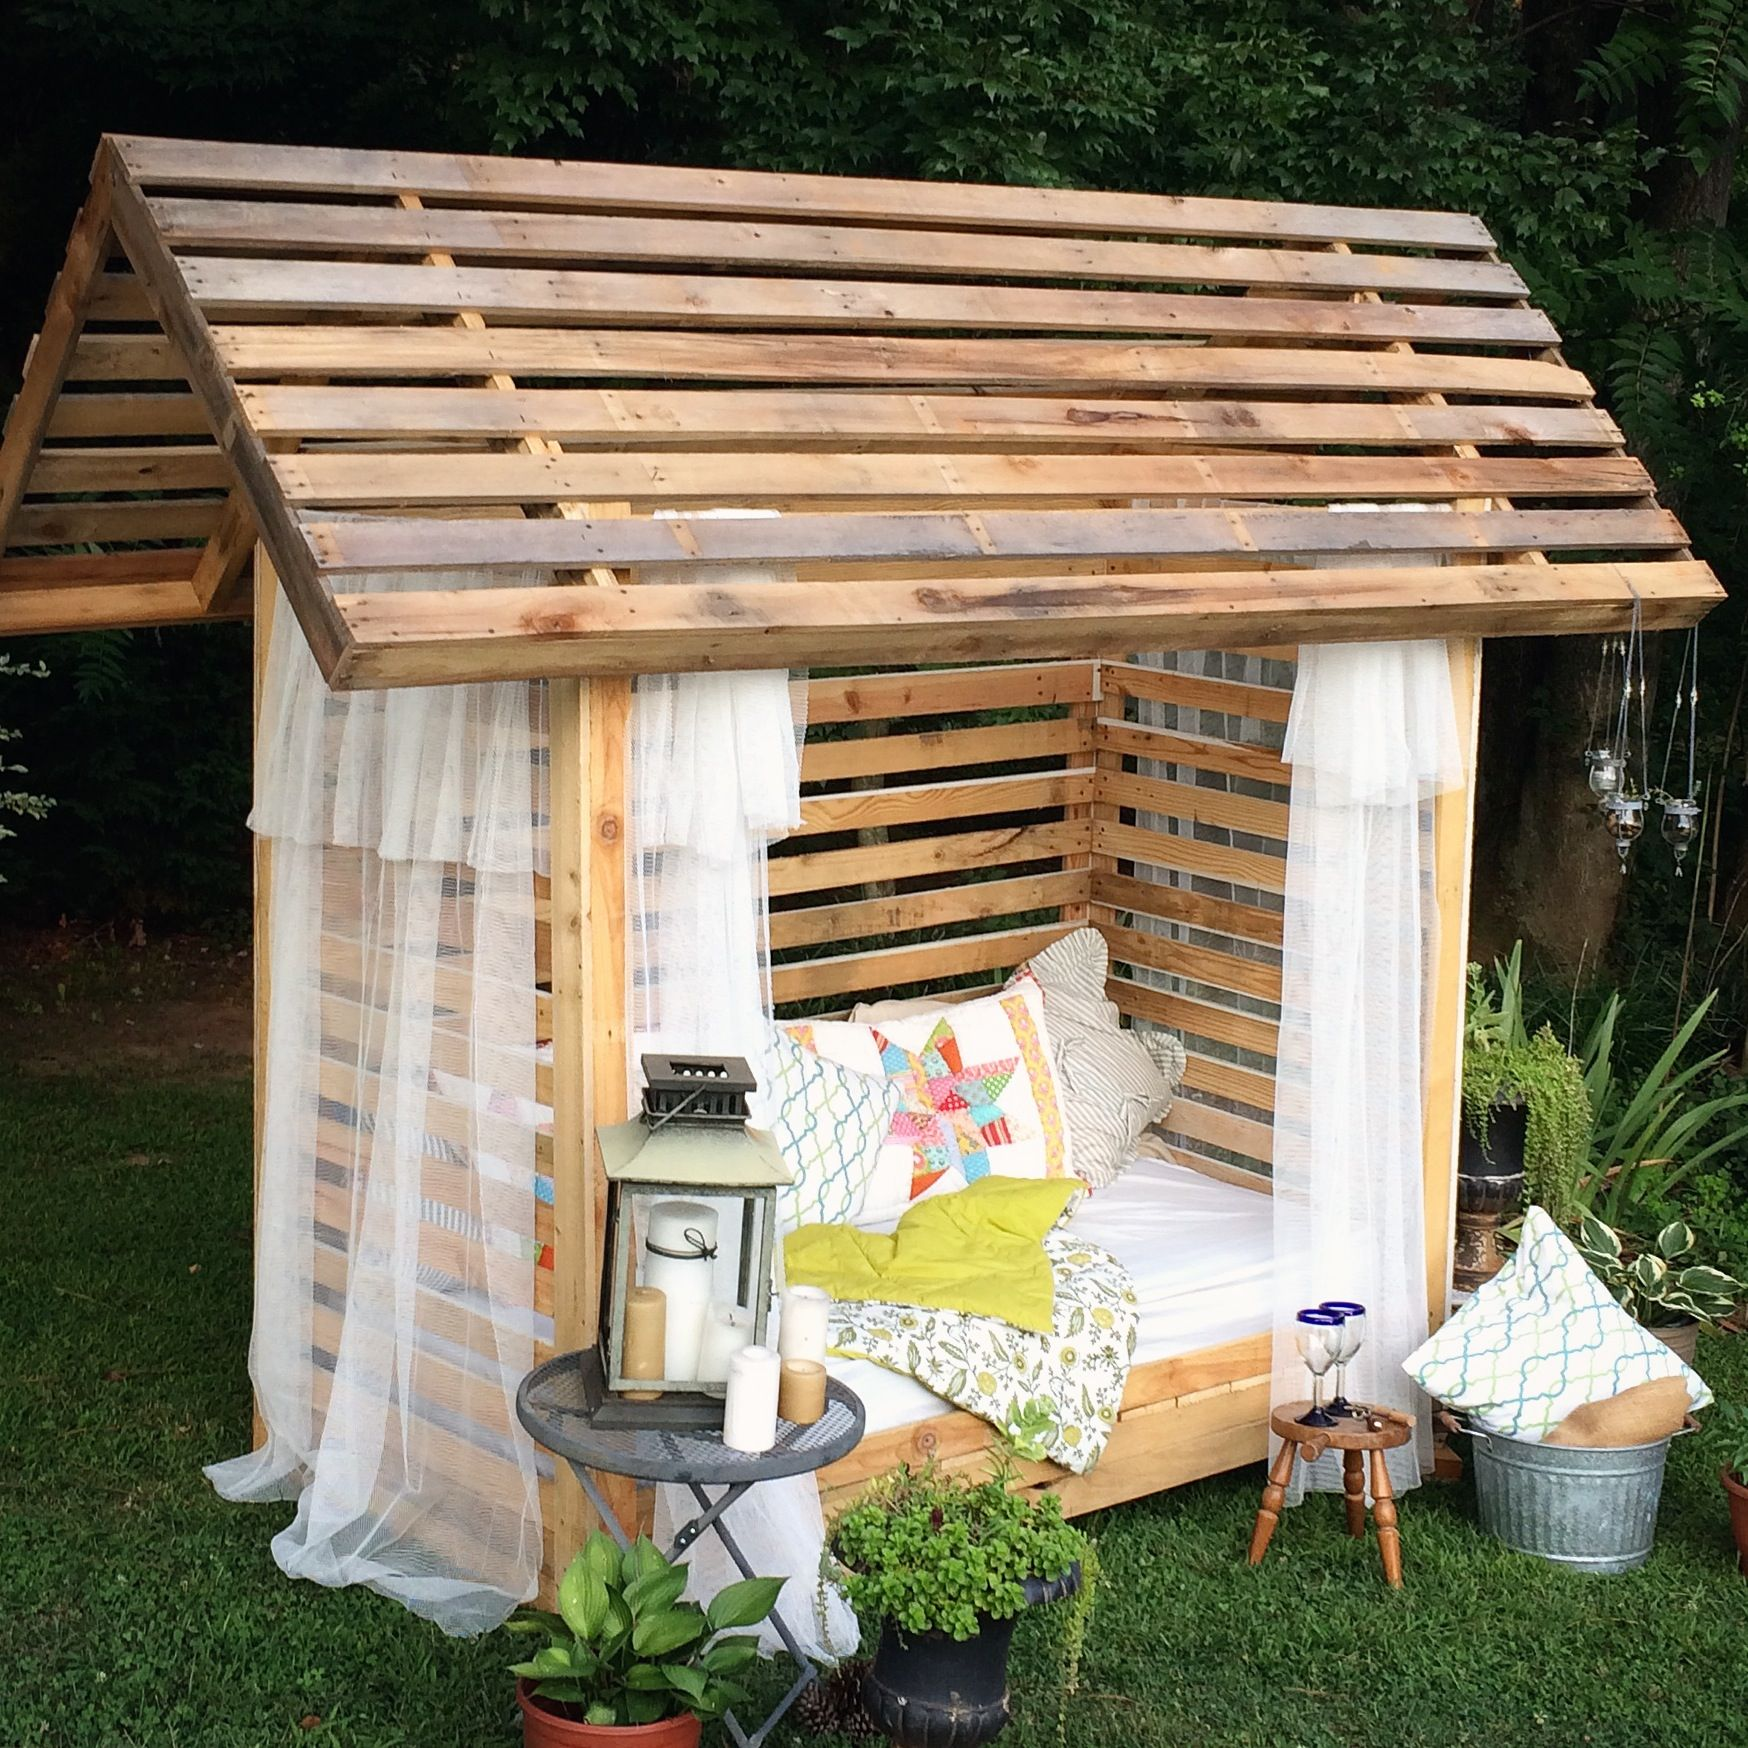 8 Fantastic DIY Outdoor Cabana Lounge Ideas to Try ... on Backyard Nook Ideas id=75391